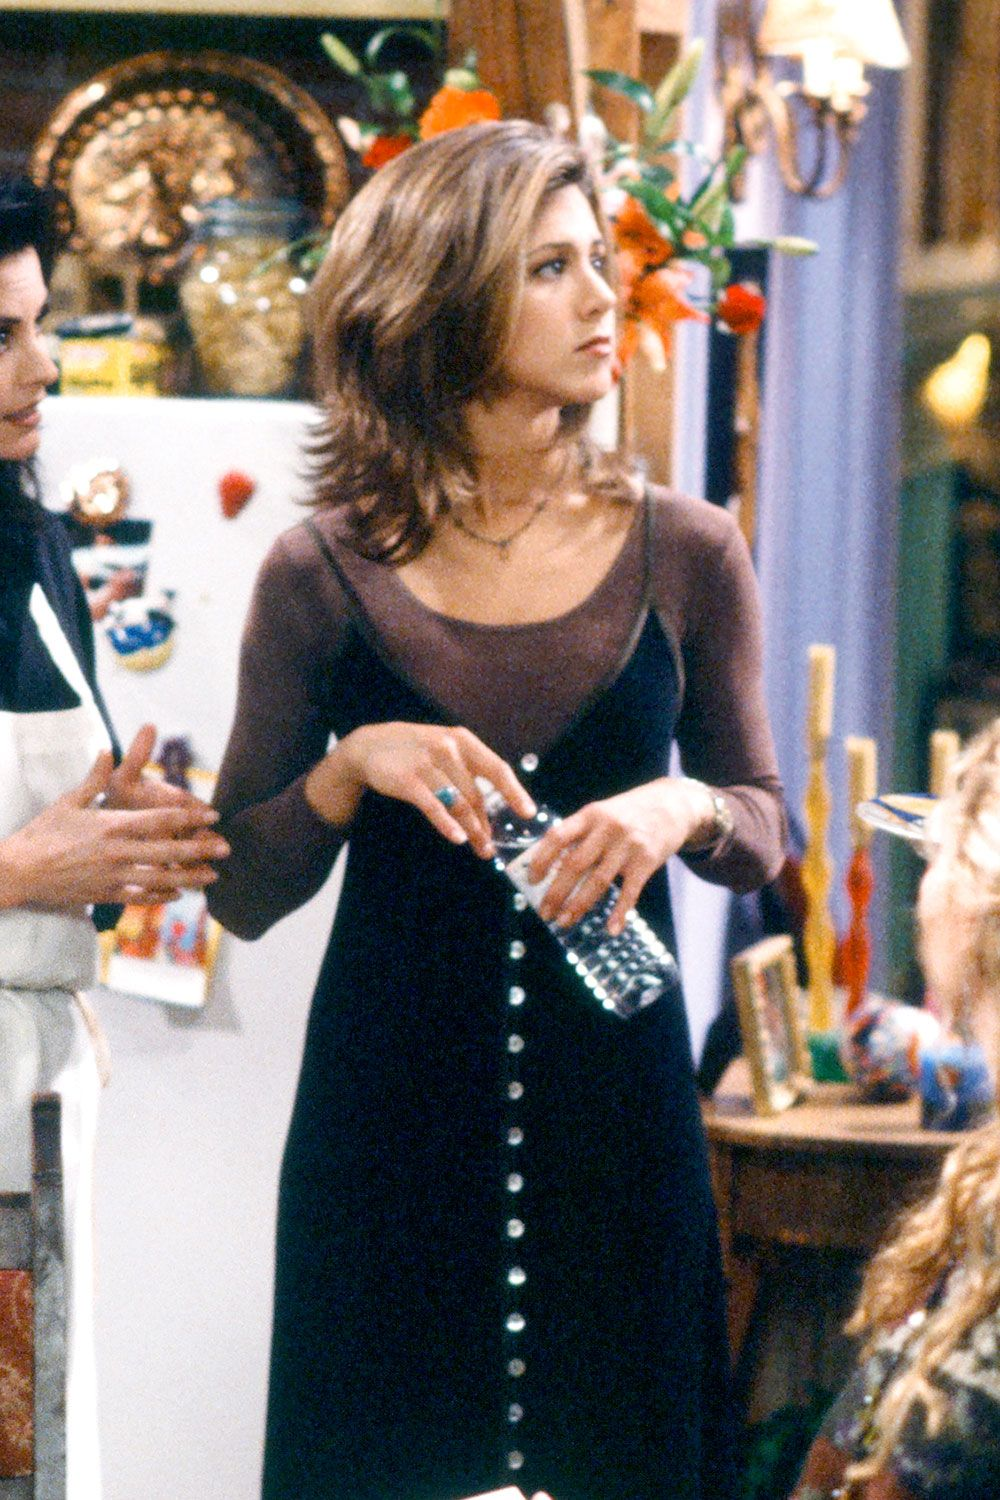 Photo of 34 Rachel Green Fashion Moments You Forgot You Were Obsessed With on Friends